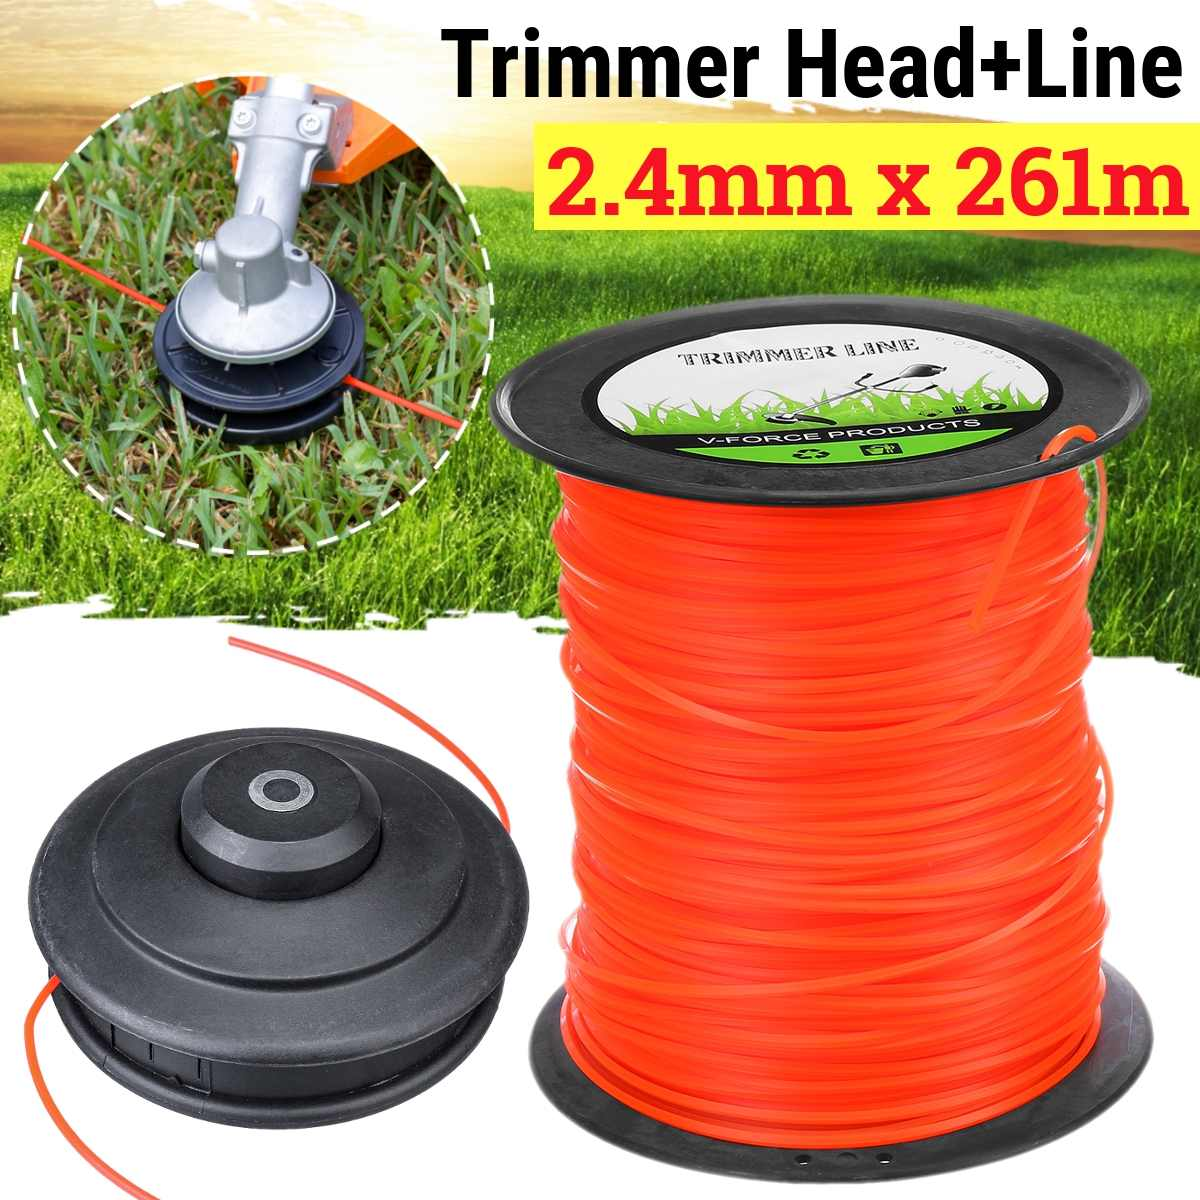 Universal M10 Aluminum Nylon Brush Mower Bump Spool Grass Trimmer 2 Lines Cutter Head Thread Line String Saw Grass Brush Mower